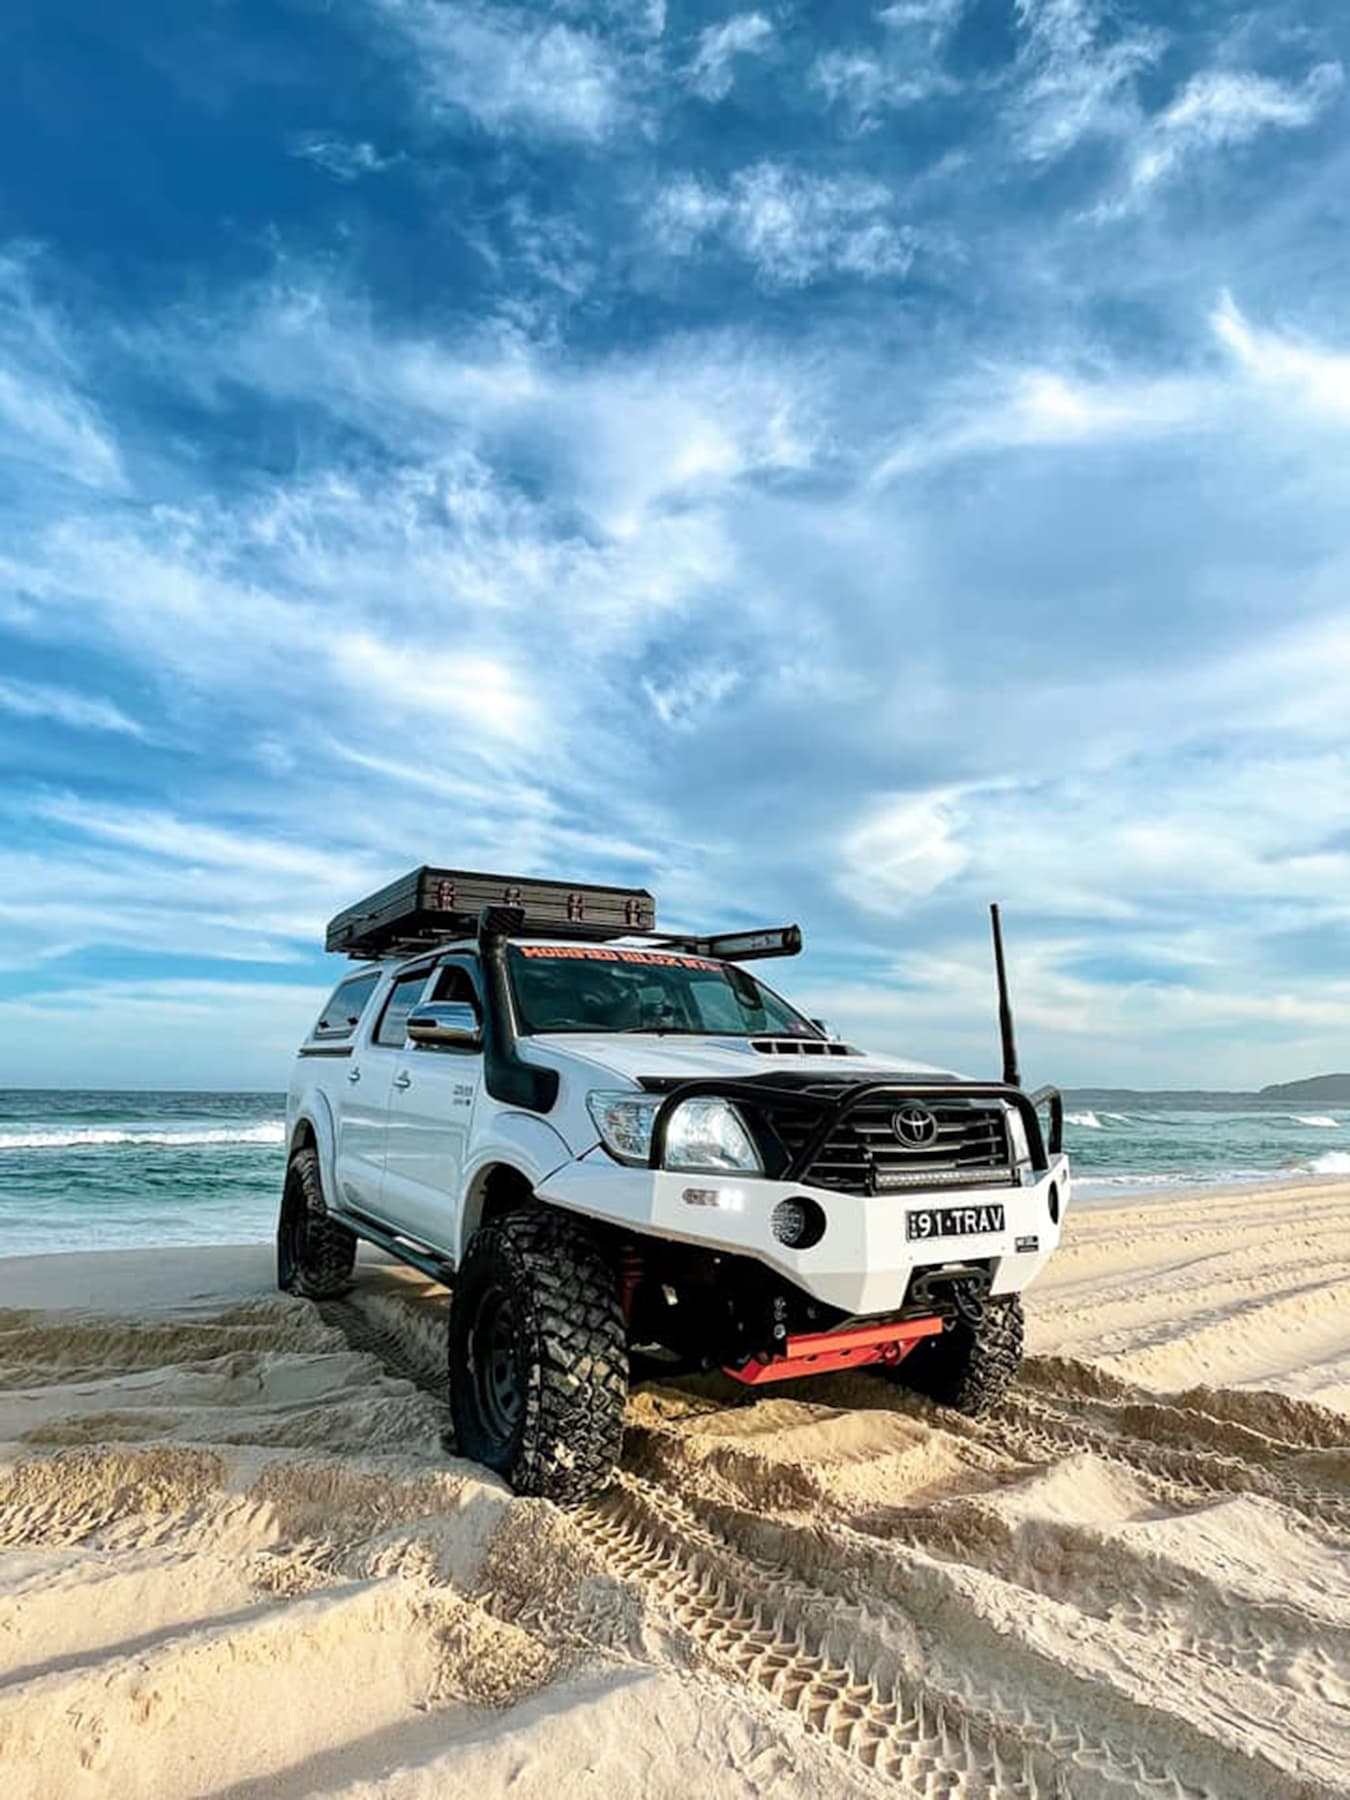 4 X 4 Australia Reviews 2021 May 2021 2011 Toyota SR 5 Hilux Readers Rig